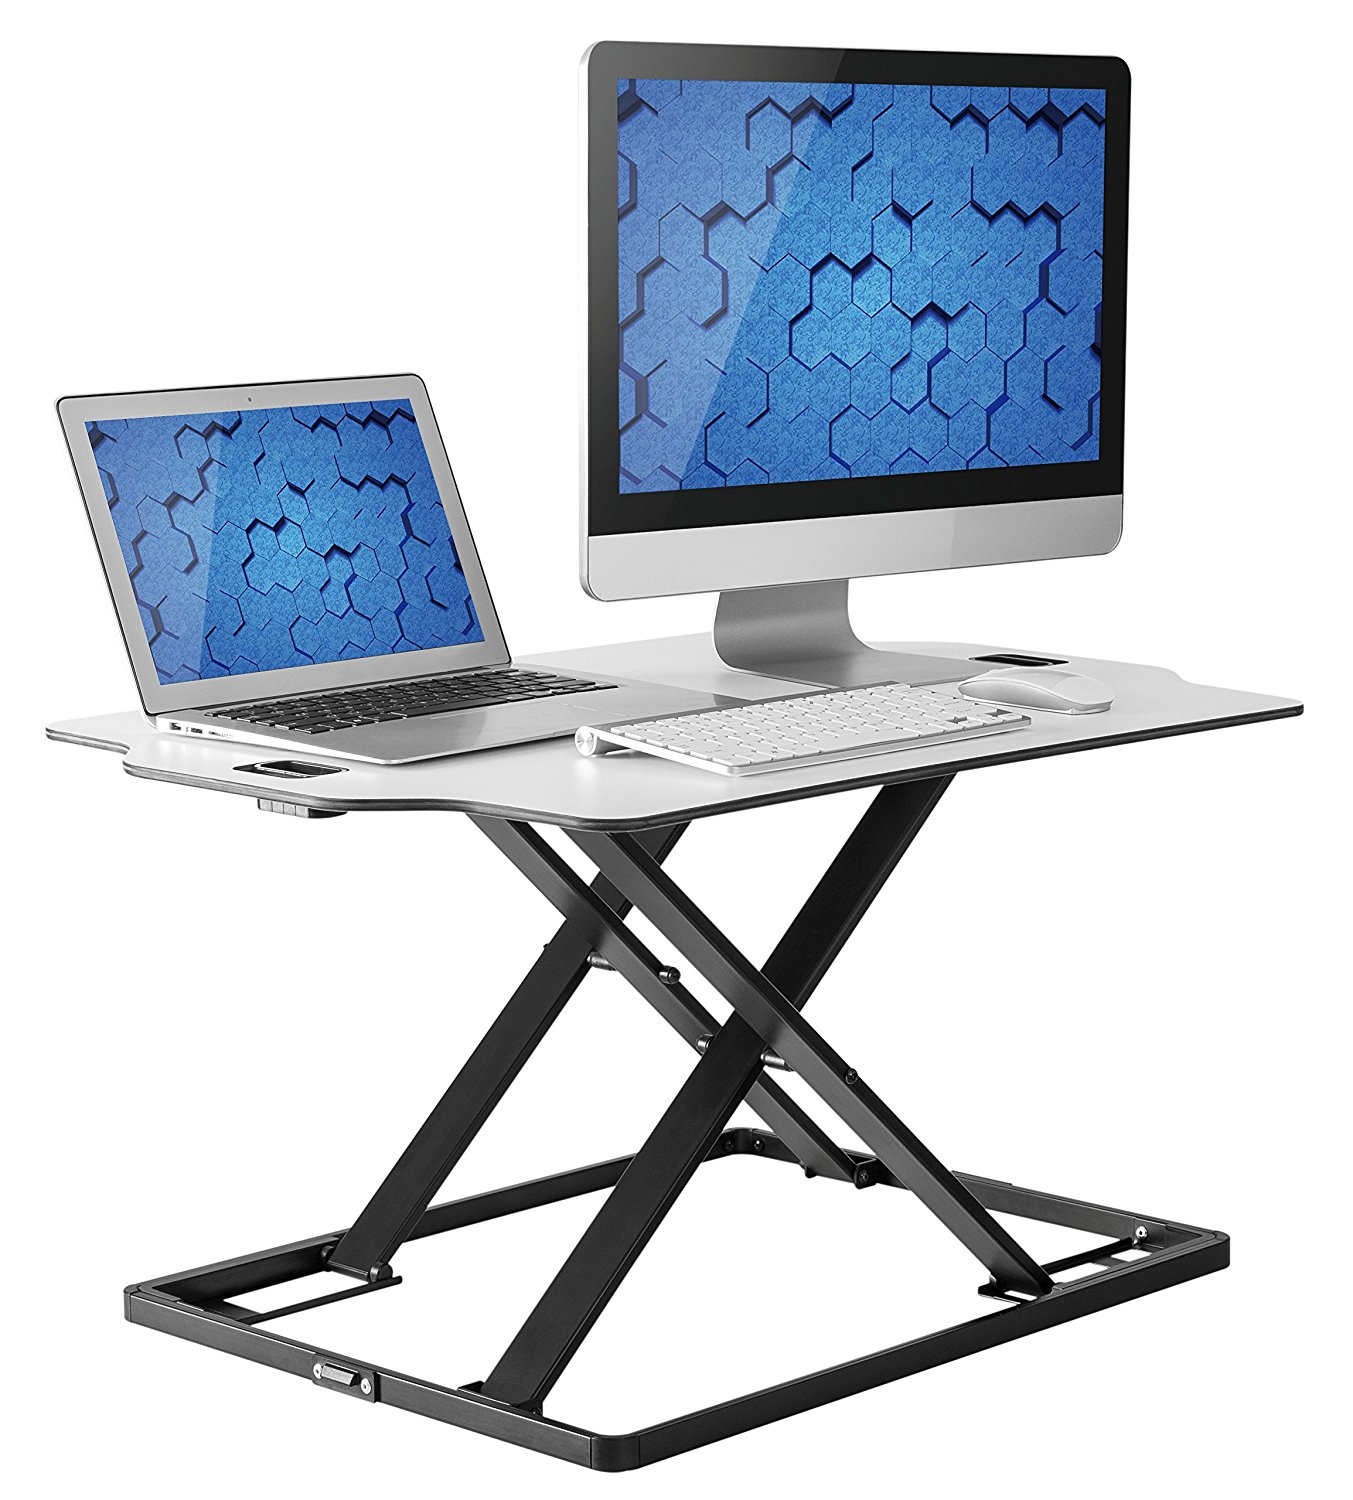 Husky Mounts Standing Desk Fully Assembled Sit Stand Desk Converter Ergonomic Adjustable Height Desk, Low Profile Sturdy Office Desk Stand, Smooth Transition From Sitting To Standing 1 To 16 Inches by Husky Mount